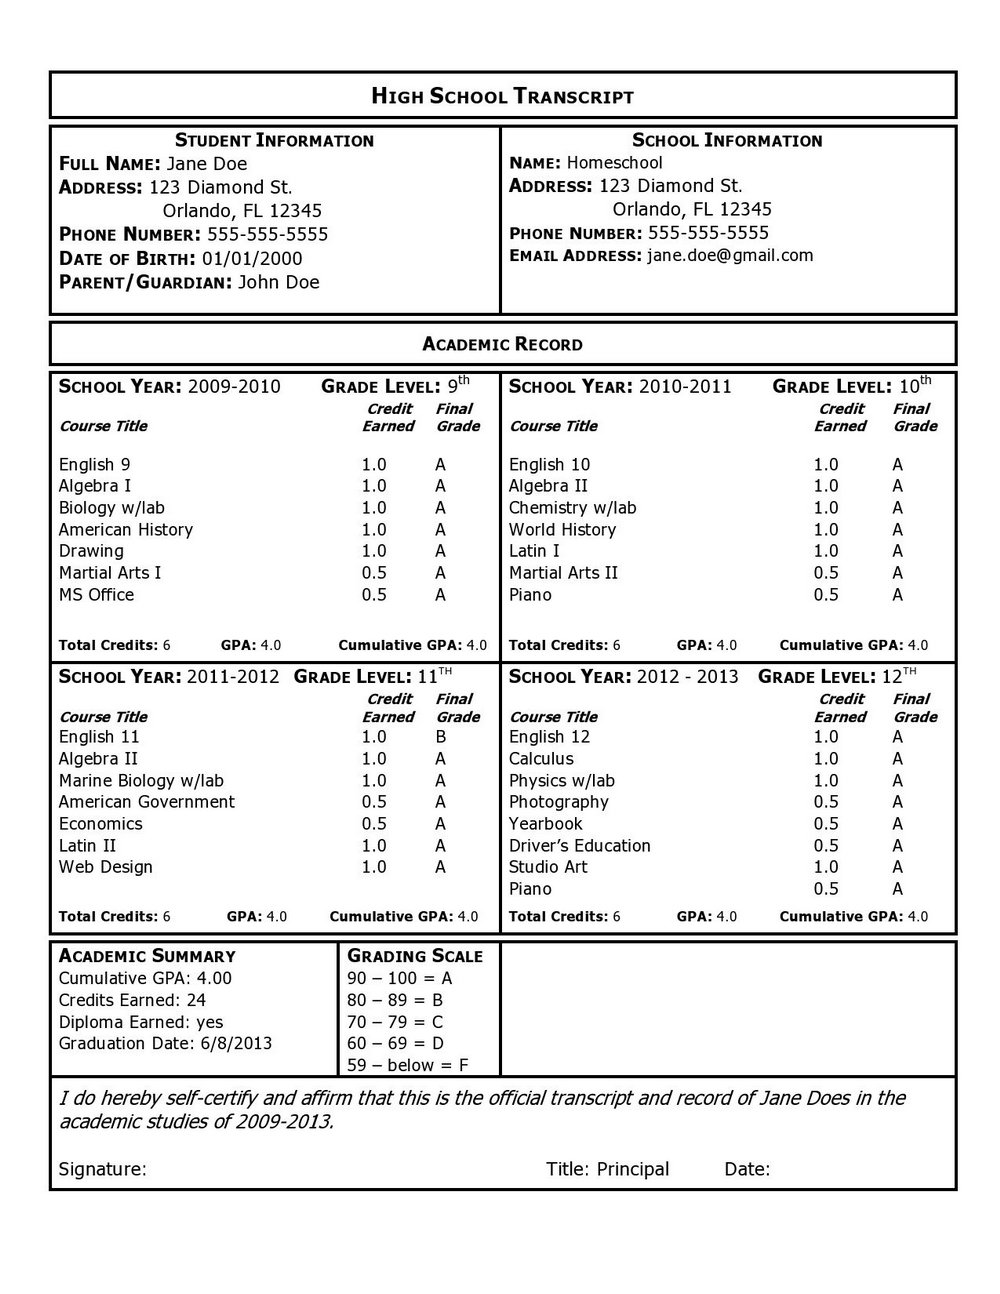 High School Transcript Template Word